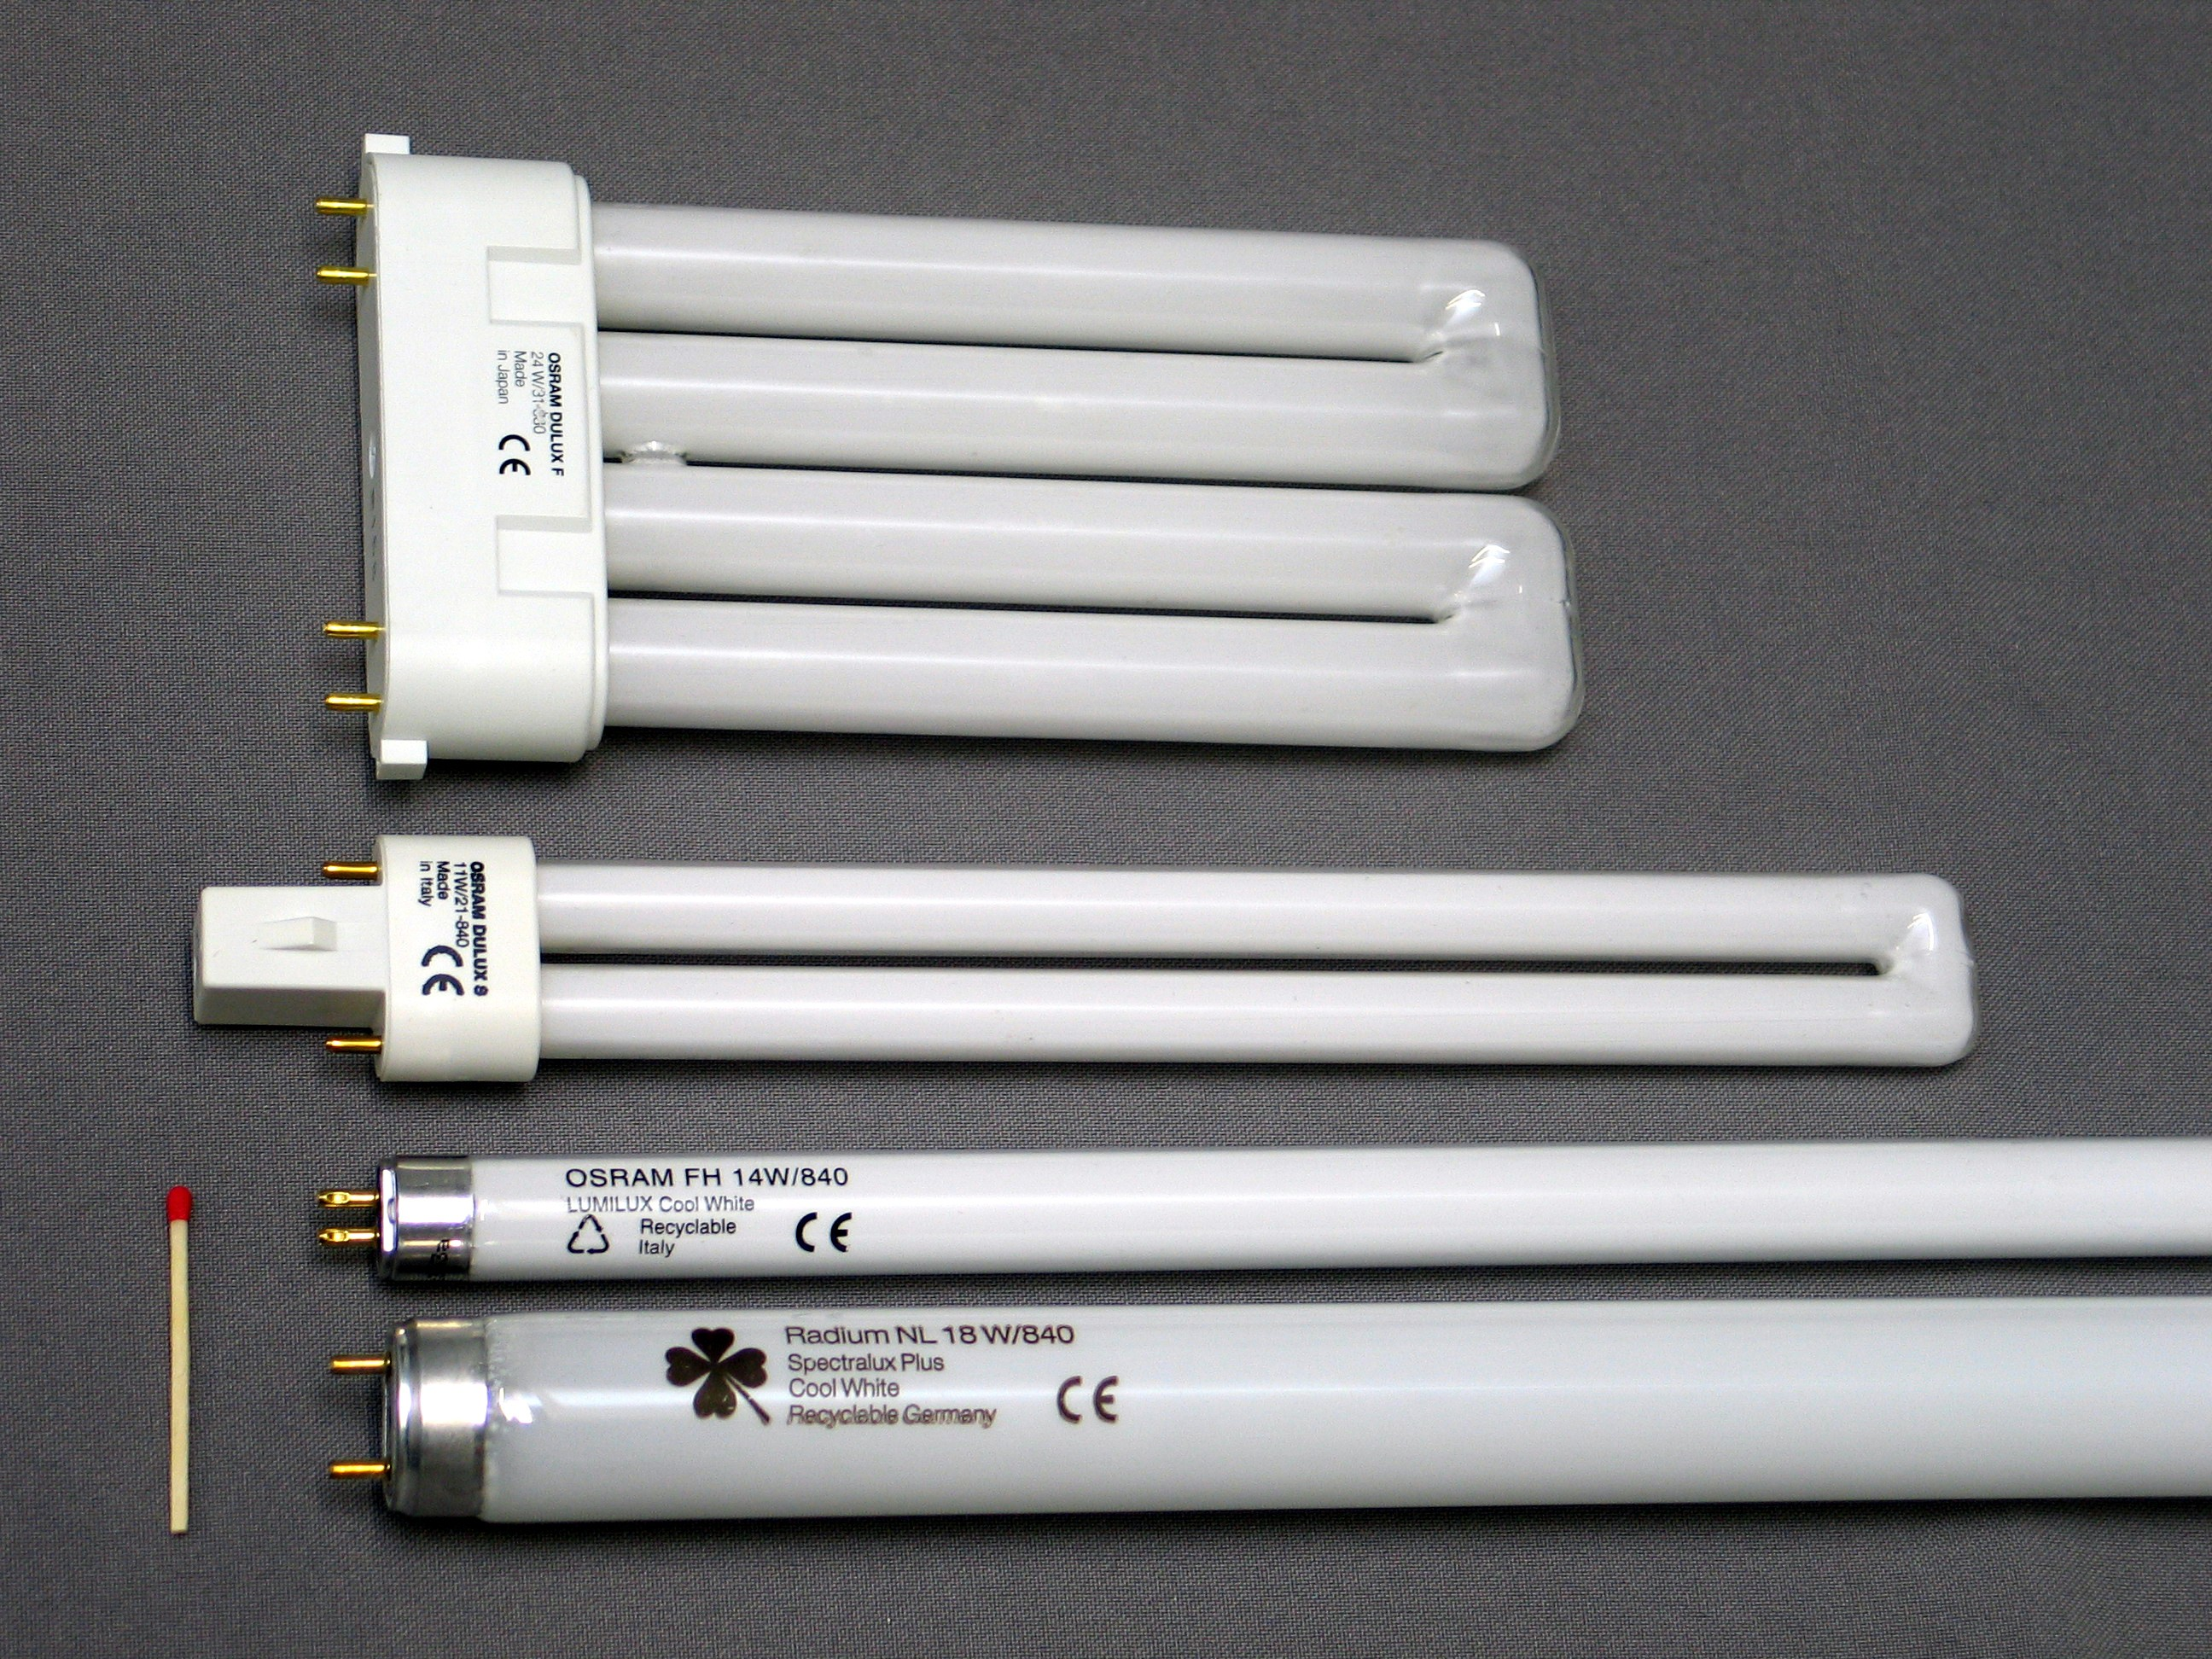 Fluorescent Tube Led Light Fluorescent Lamp Formats Wikipedia